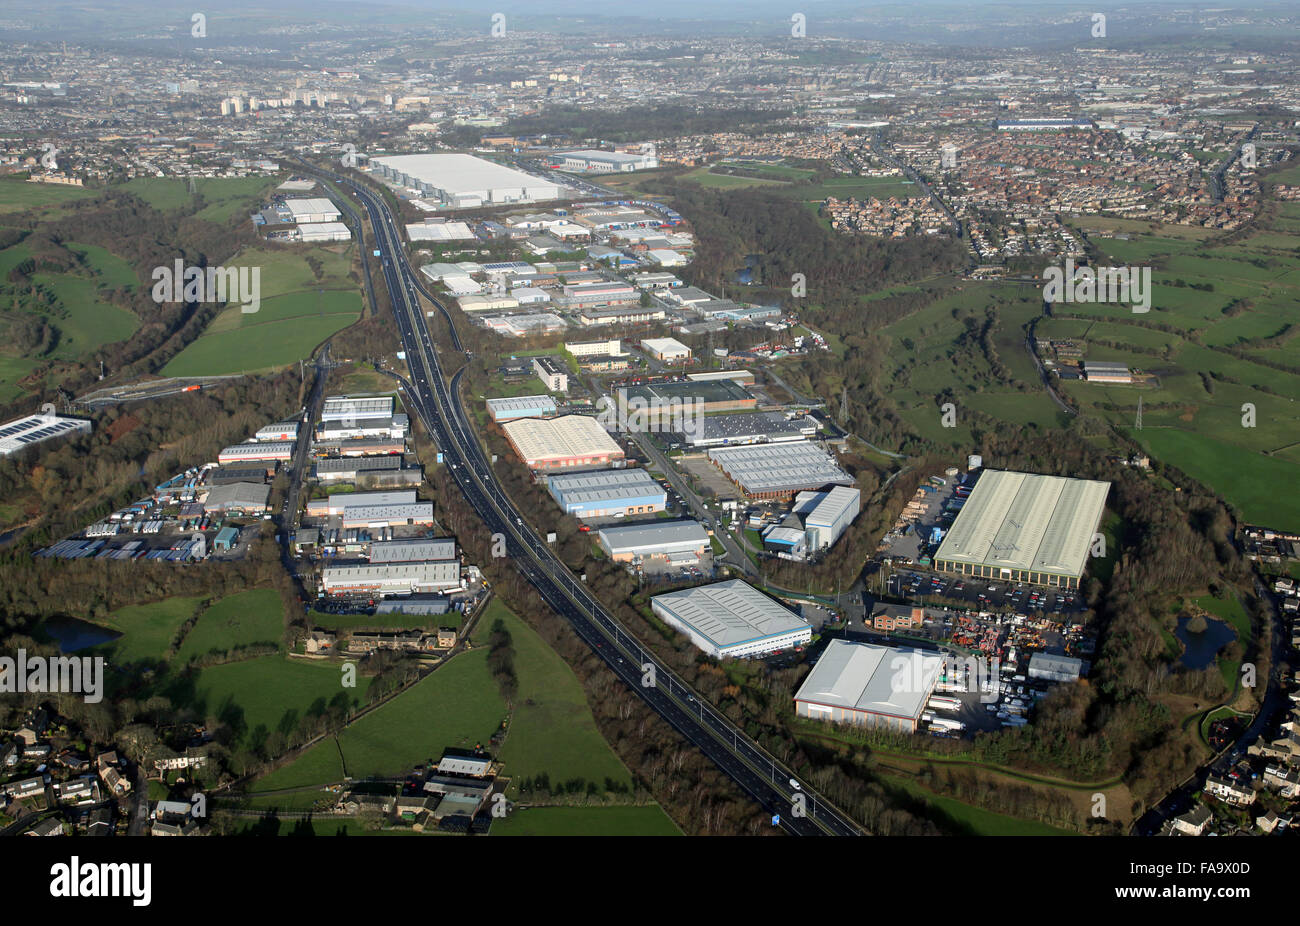 aerial view of Euroway Trading Estate, M606, Bradford, West Yorkshire, UK - Stock Image